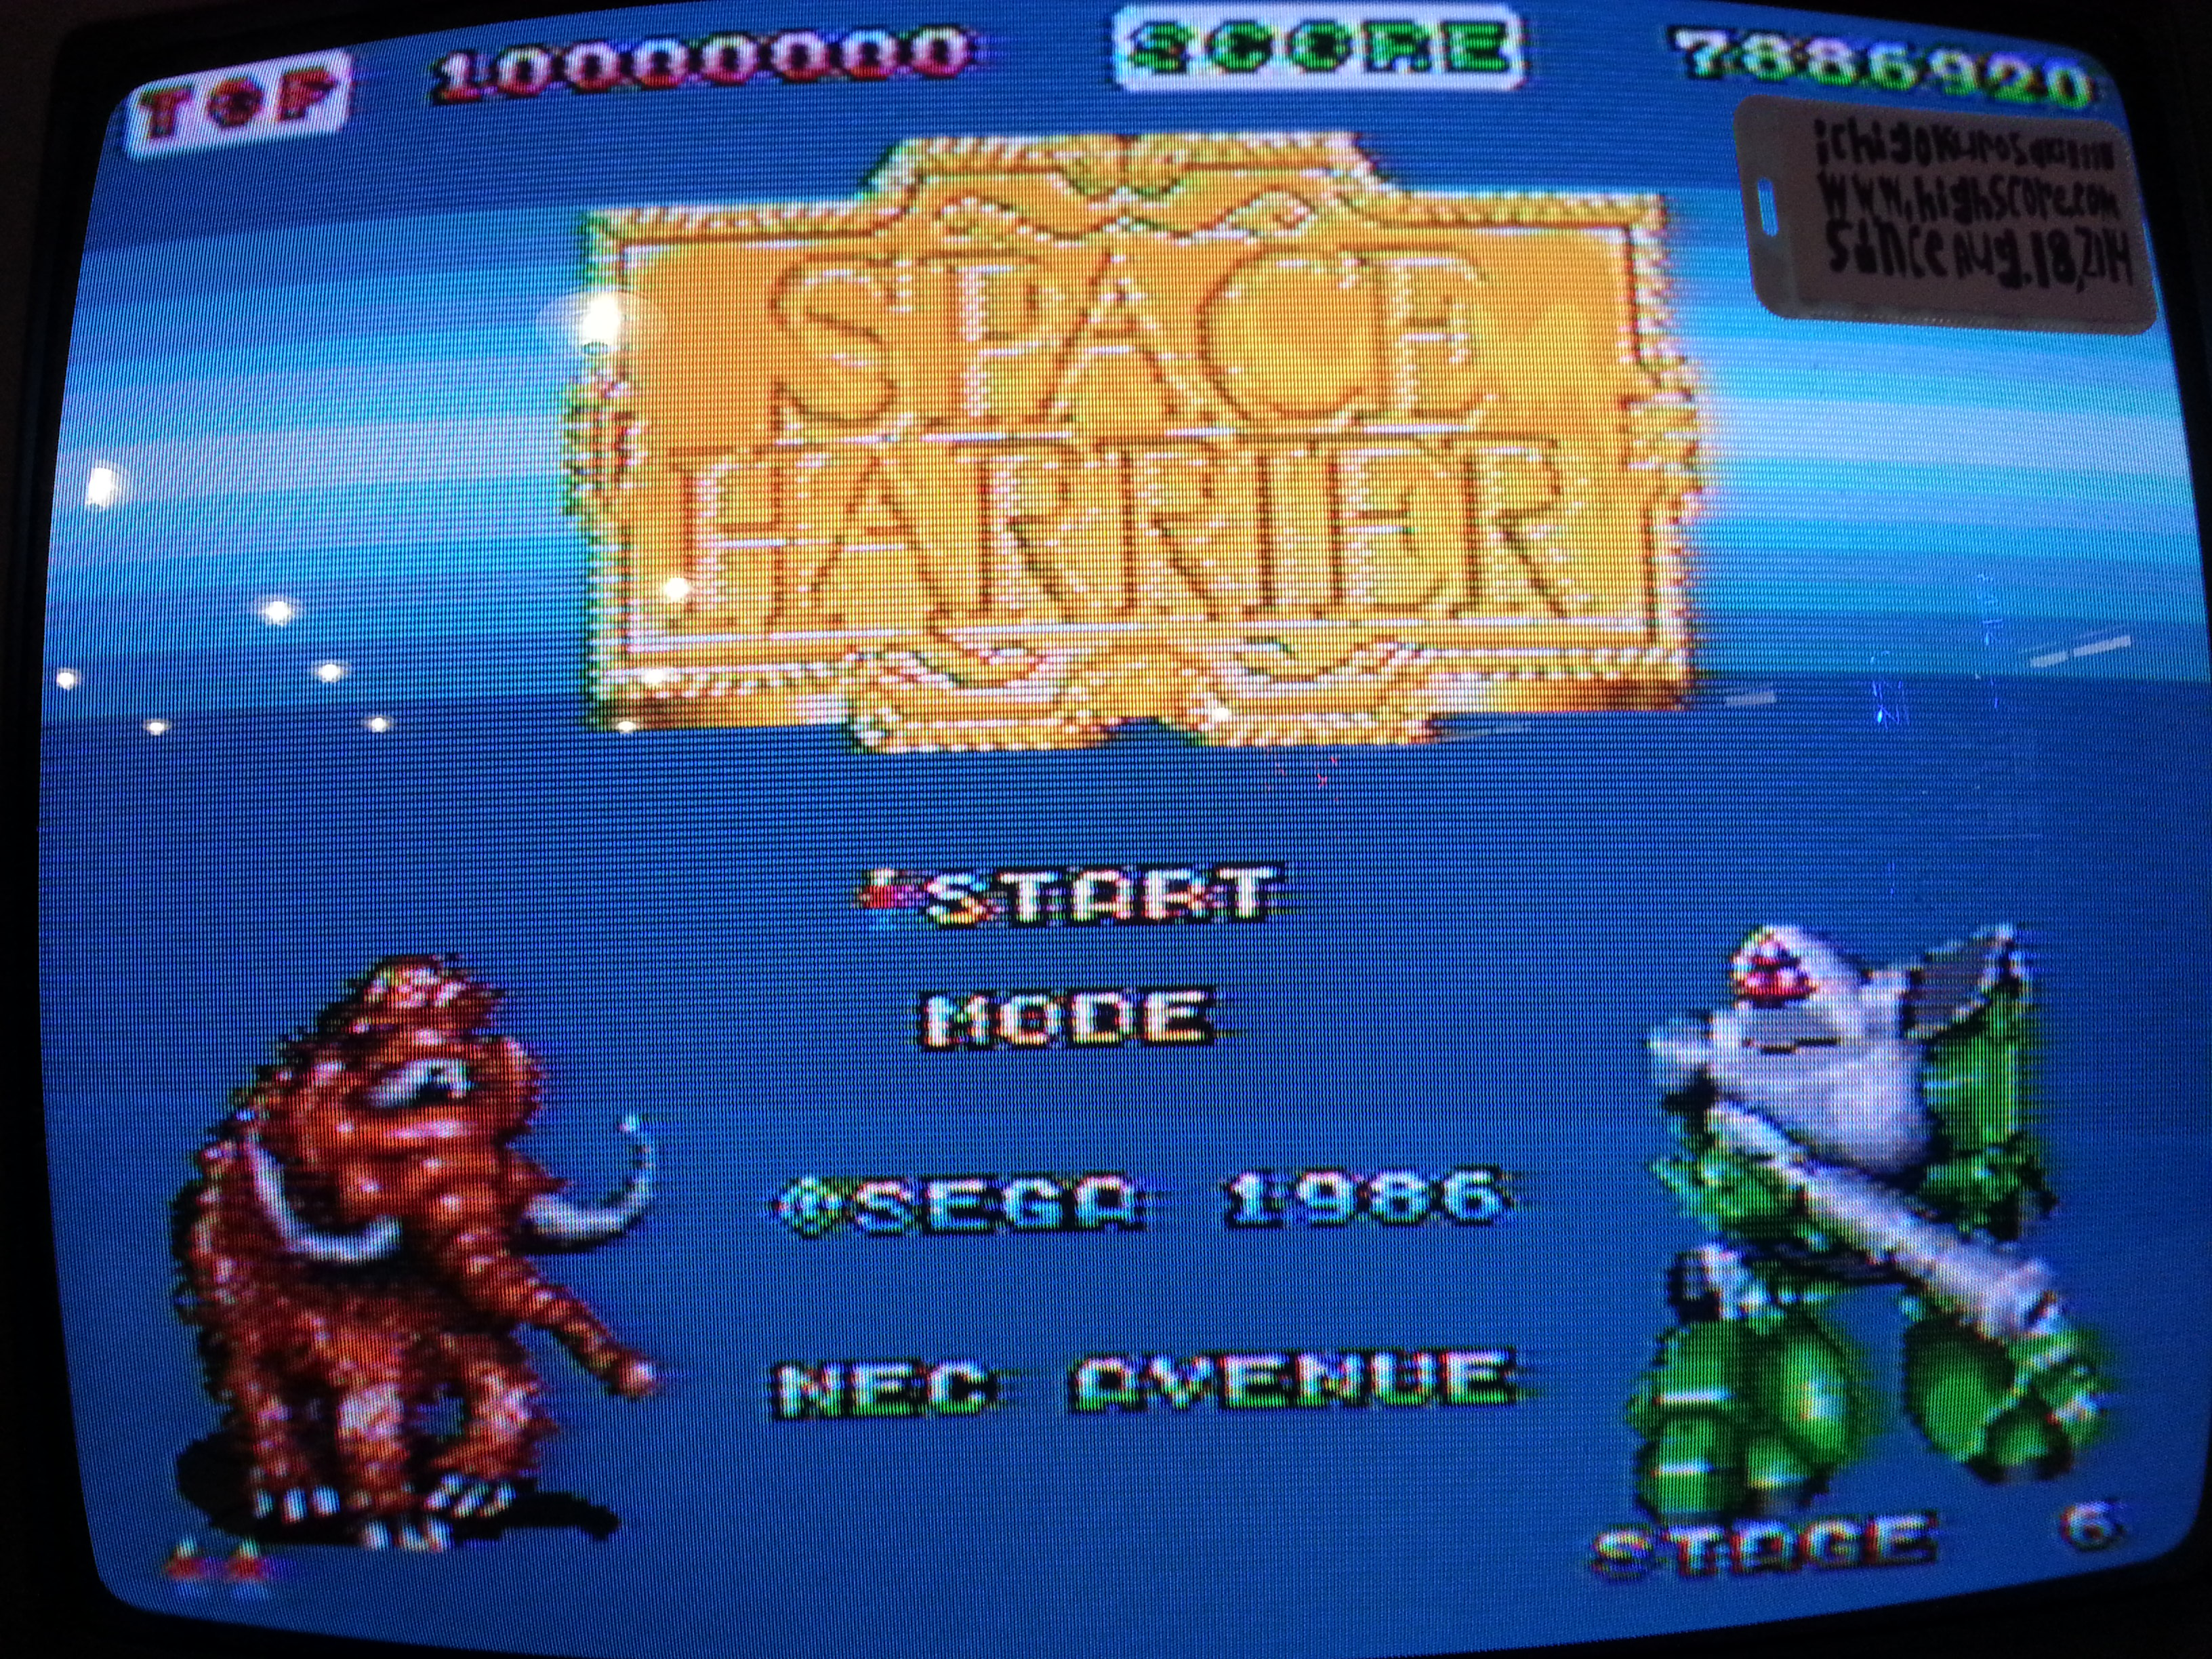 Space Harrier 7,886,920 points